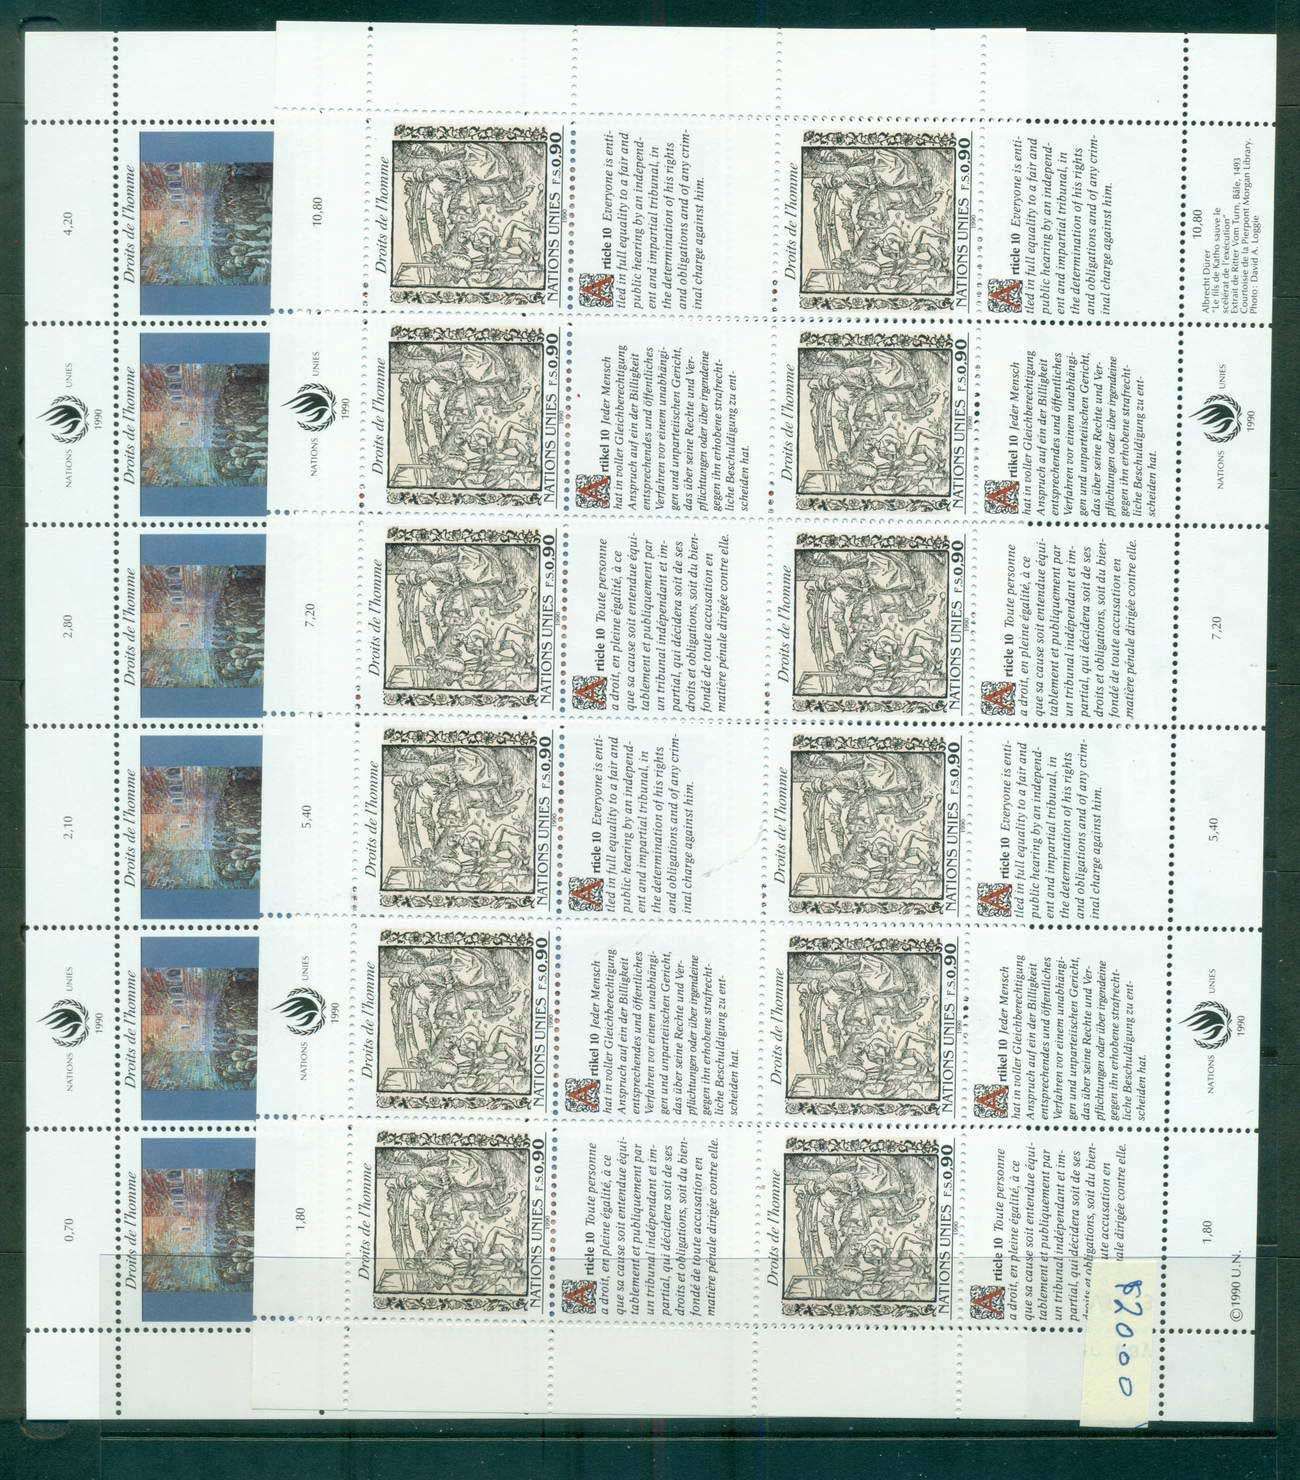 UN Geneva 1990 Human Rights 2x Sheets CTO lot66066